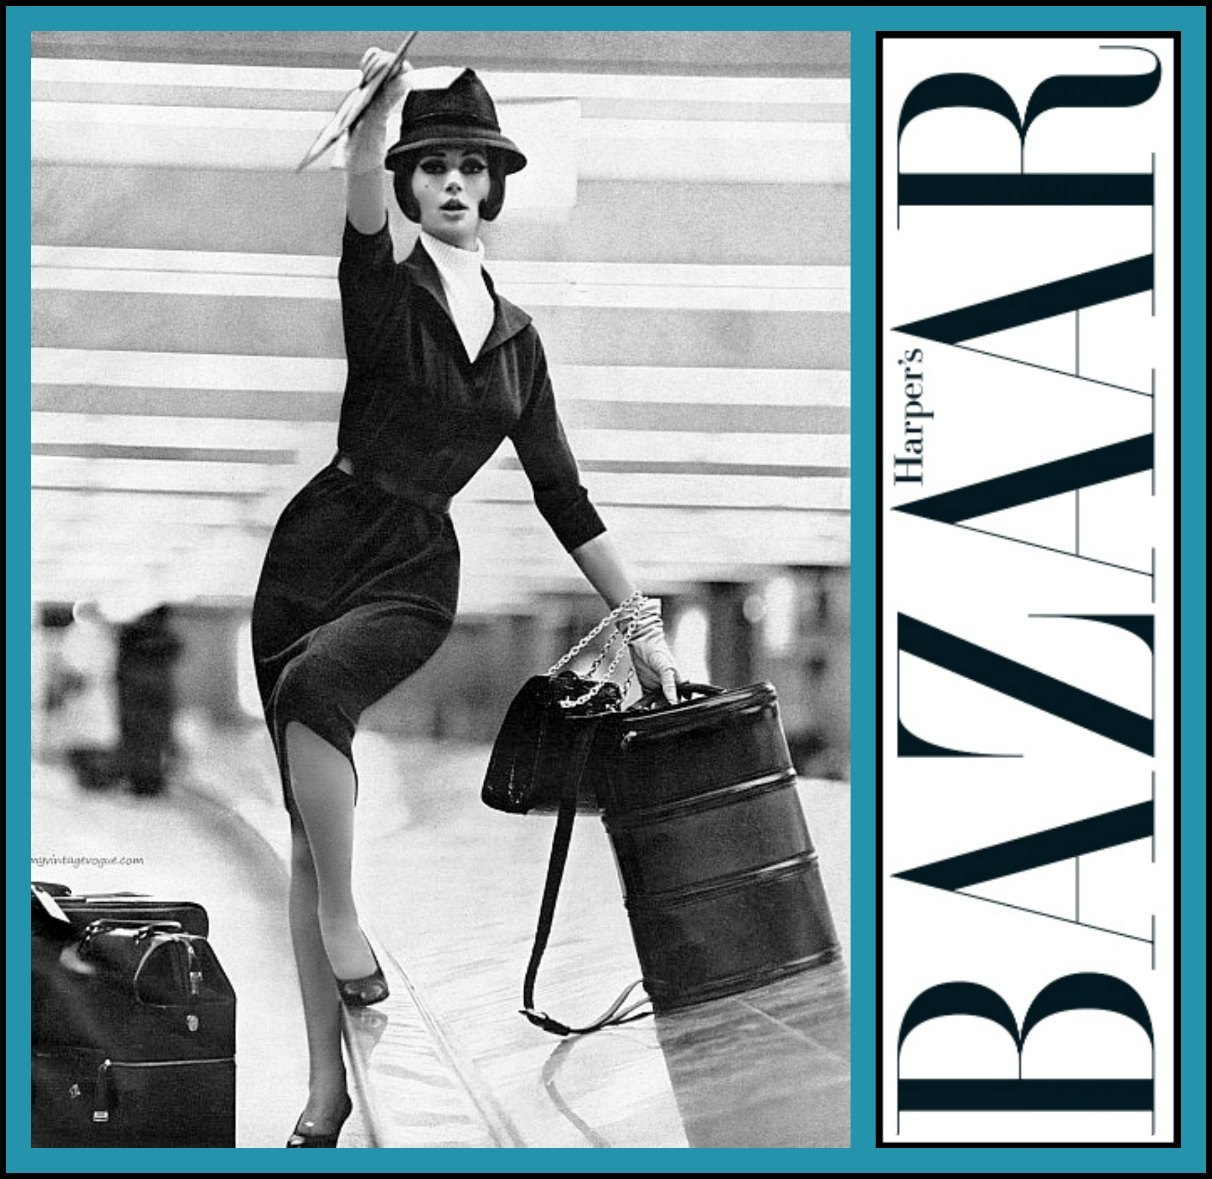 lillian-bassman-1961-bazaar-insta-final